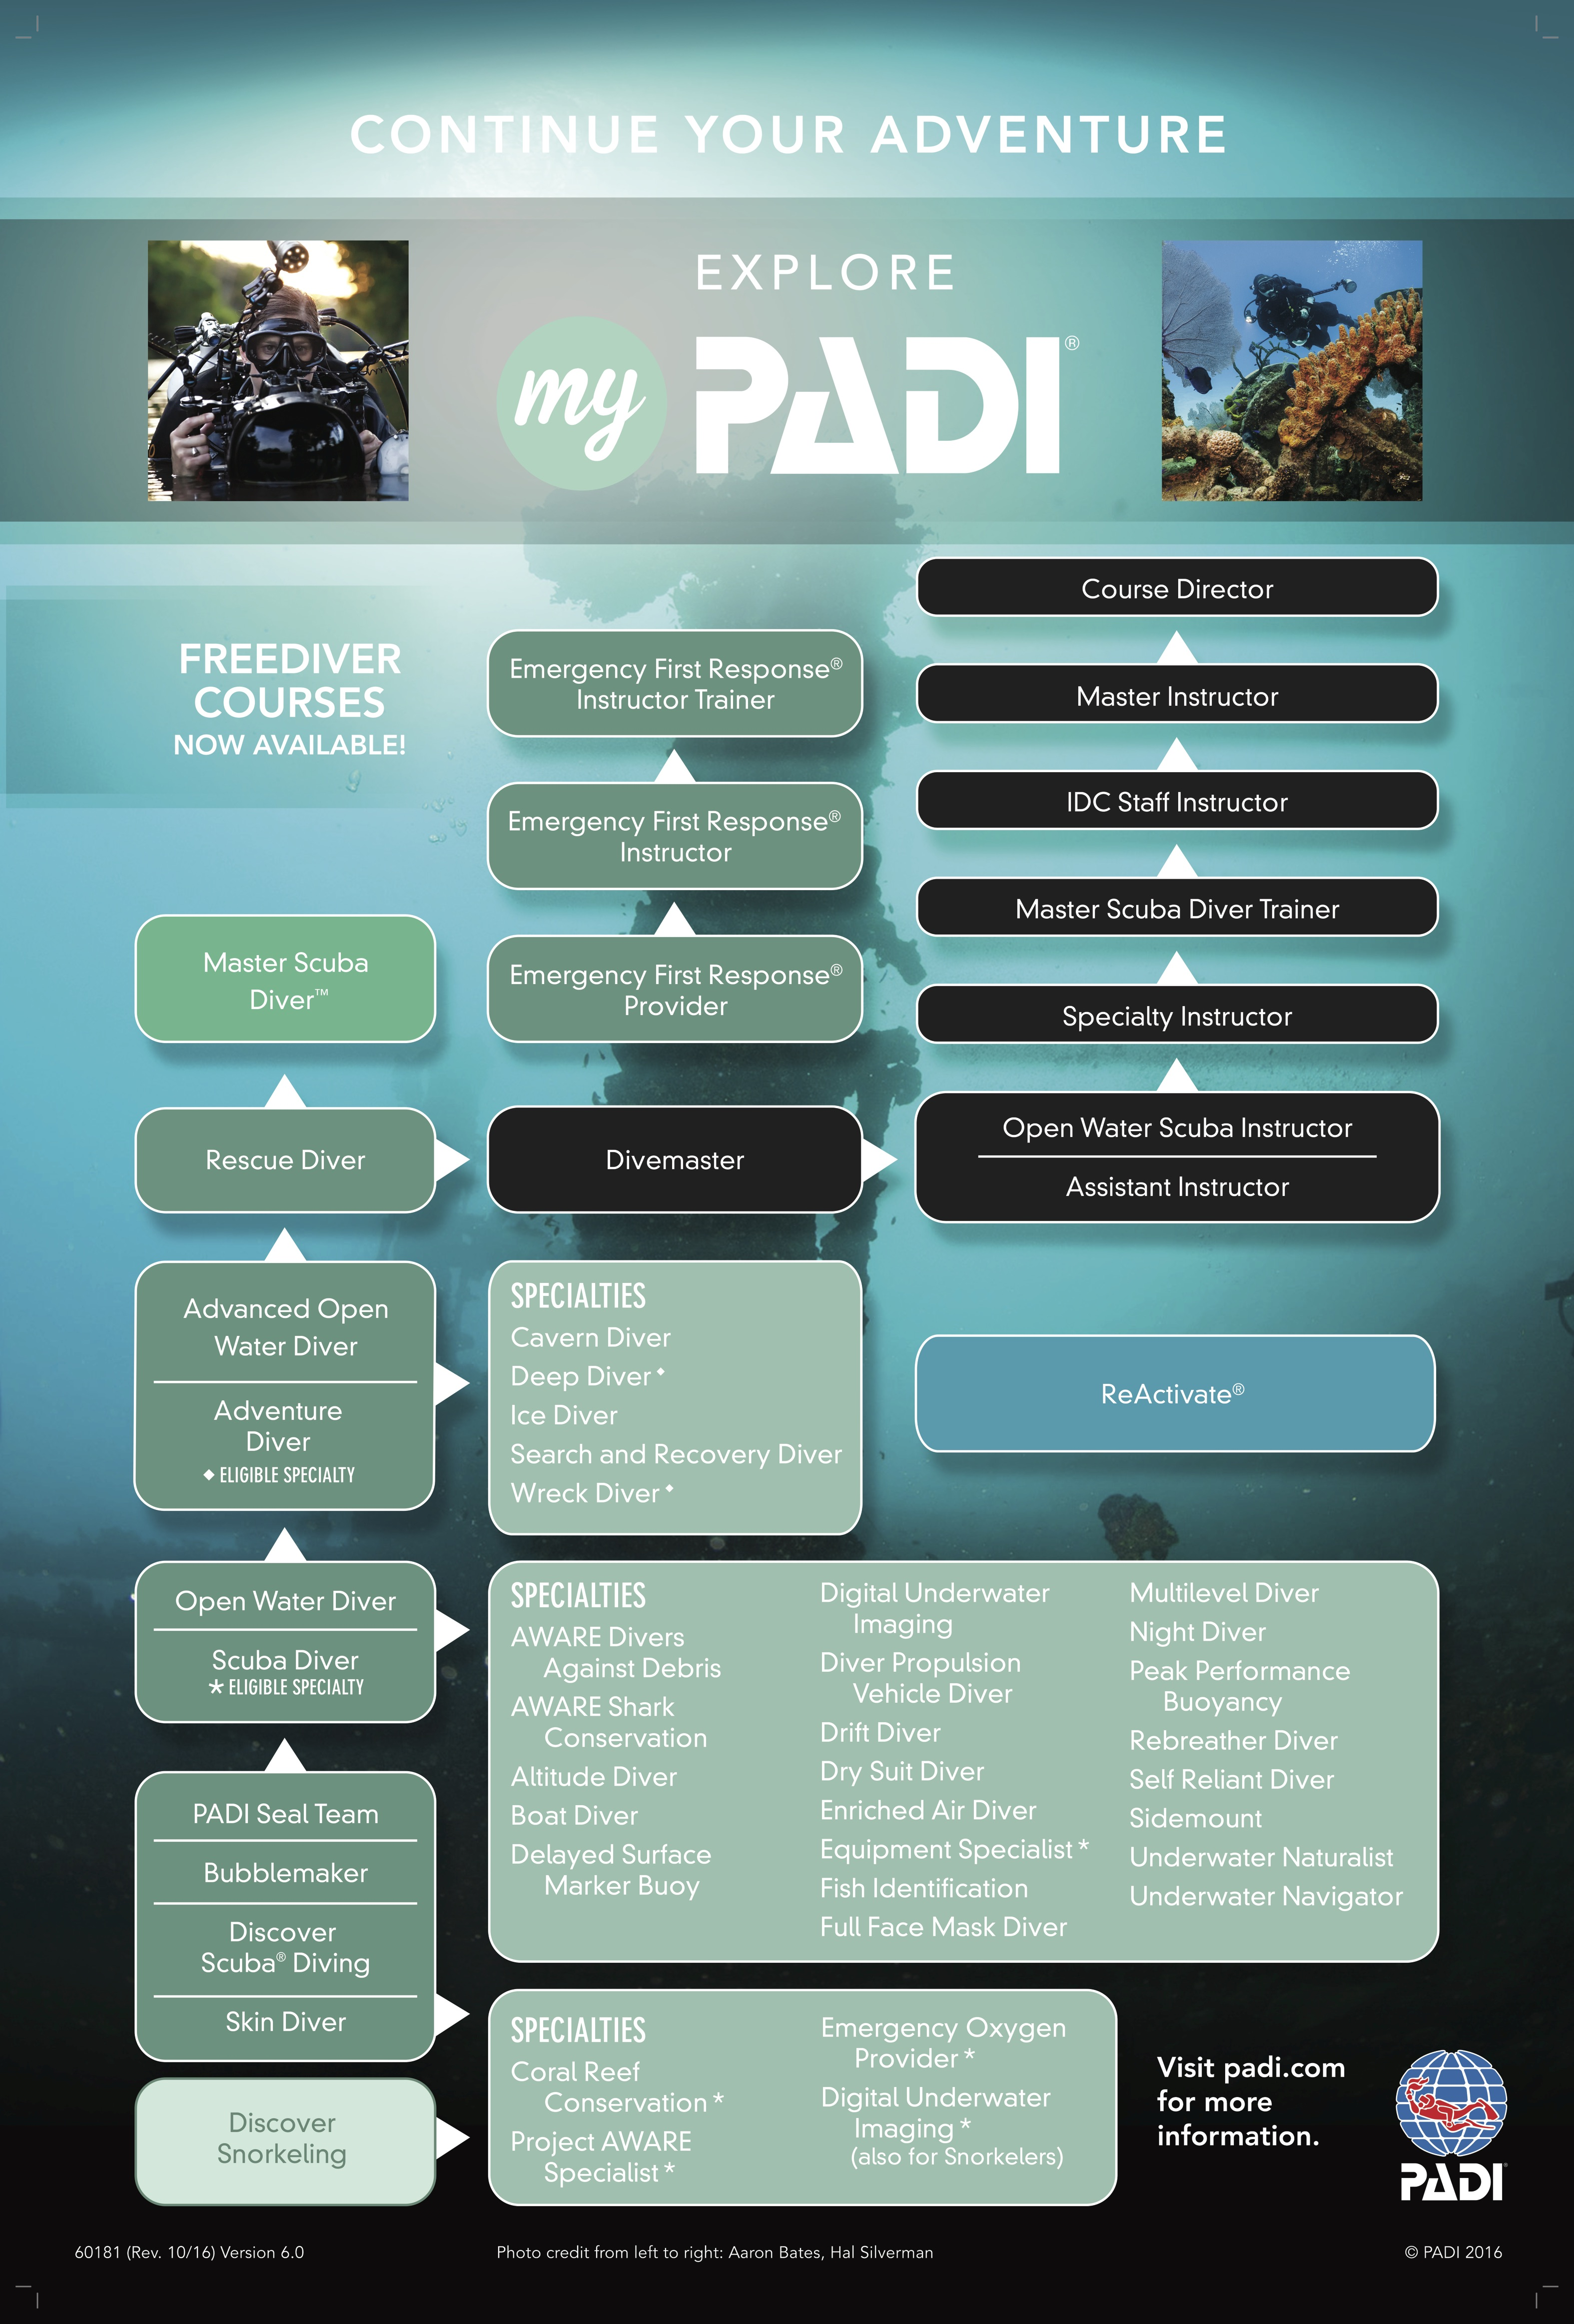 A complete guide to the padi divemaster crystal dive the worlds most popular professional level scuba diving training course divemasters form the backbone of any successful scuba diving operation xflitez Gallery